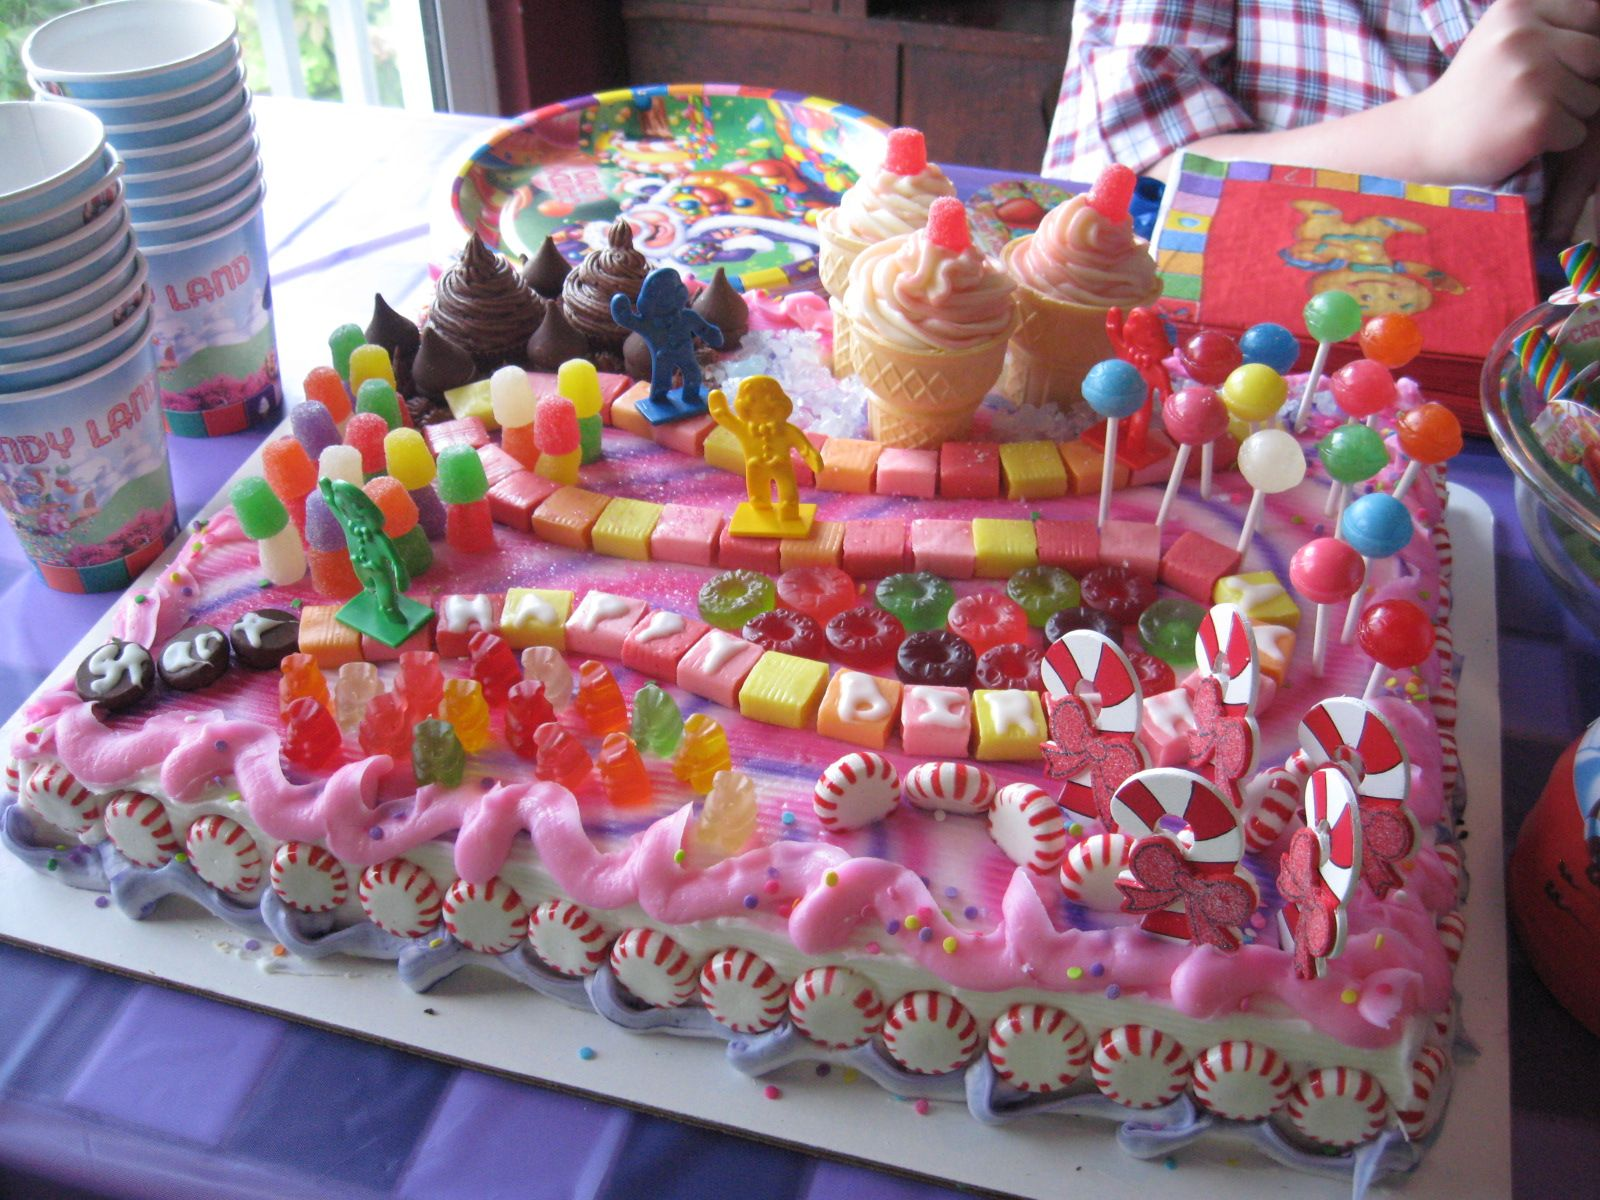 Candy Decorations Please Child Pick Candyland For Your Birthday Theme This Year I